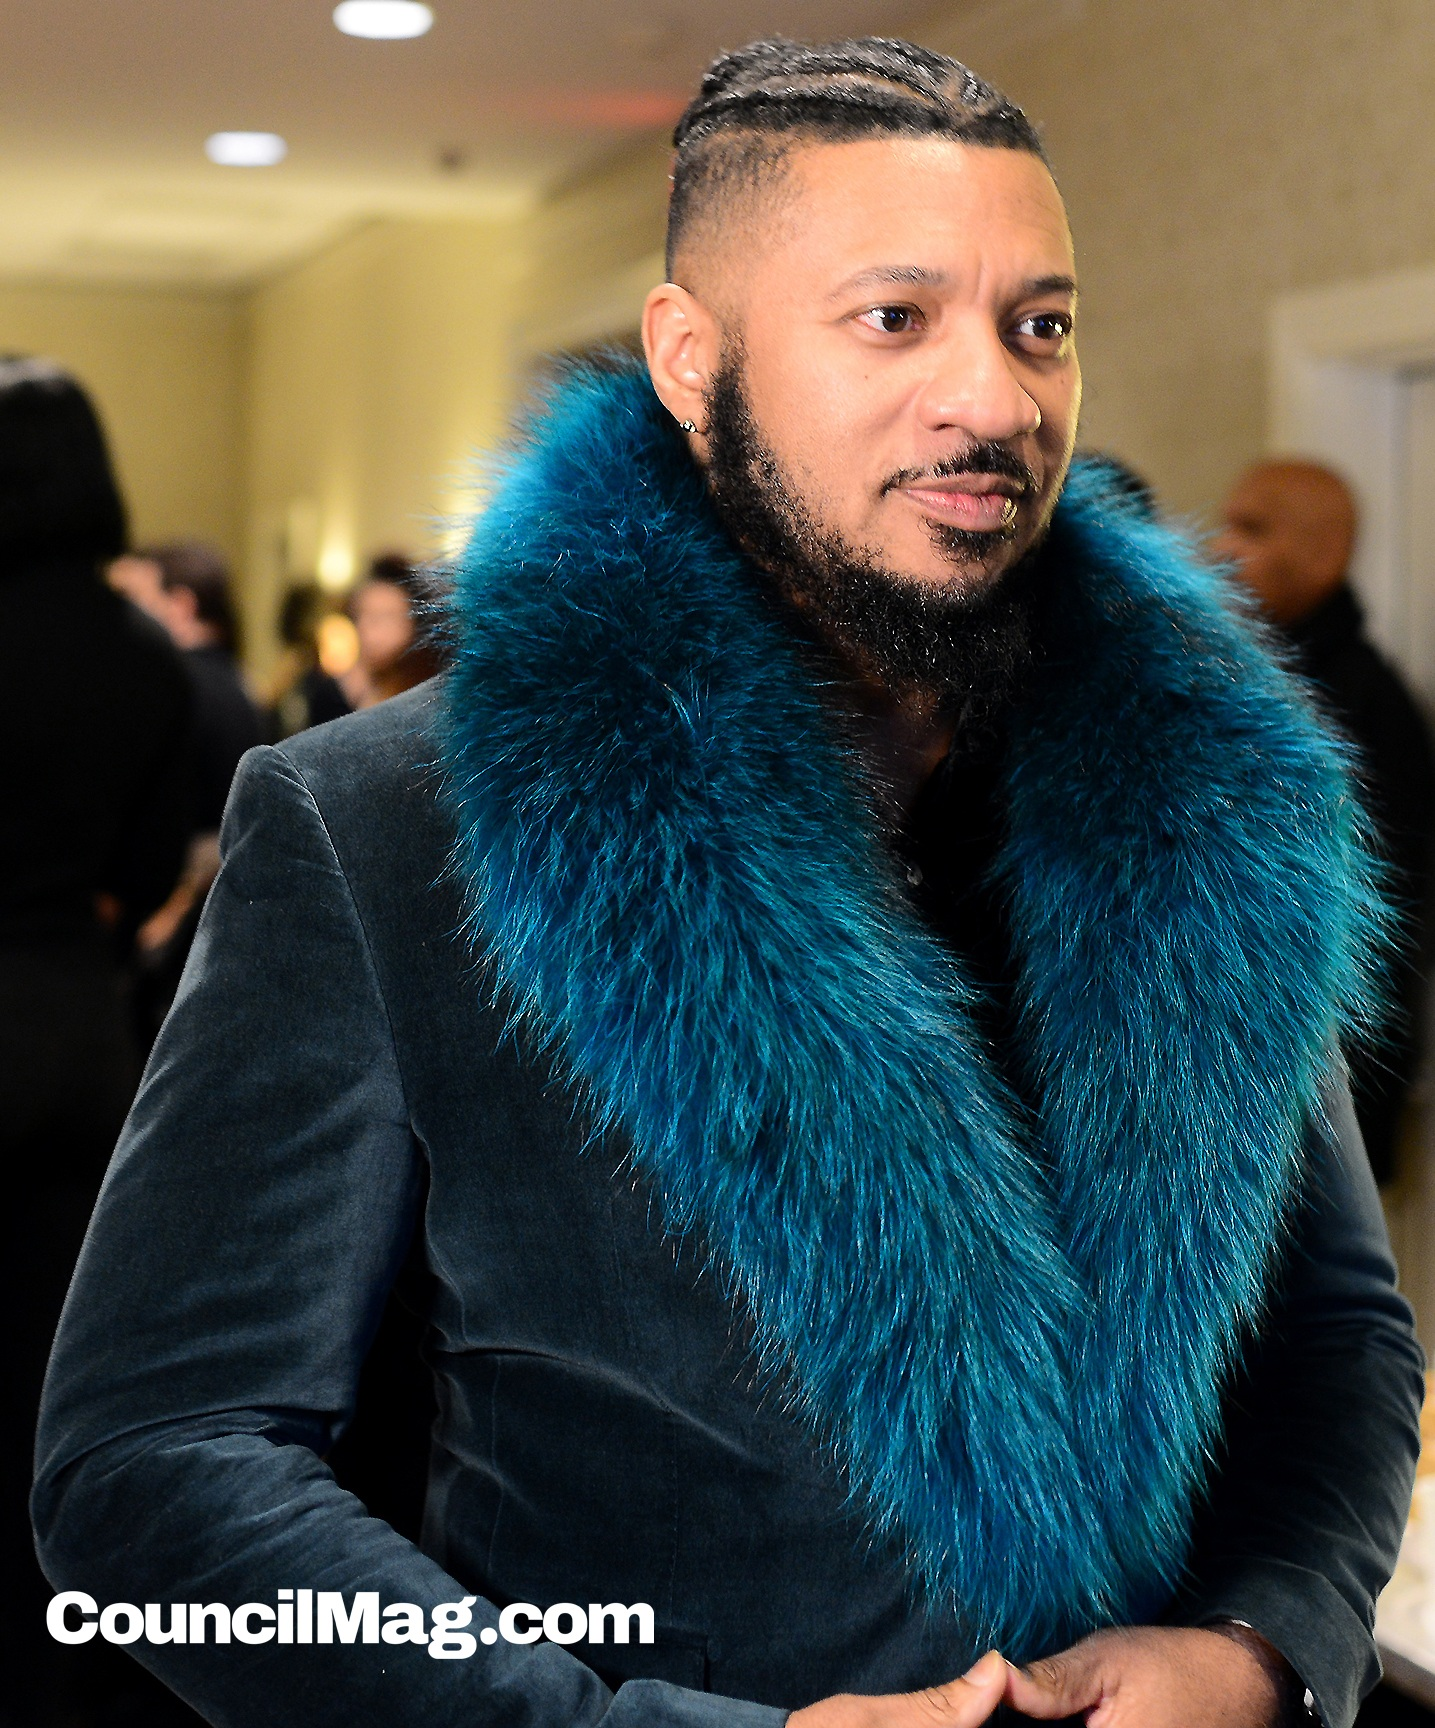 """""""We have over 300 models auditioning for the top spots of fashion week."""" - Ean Williams, executive director of DC Fashion Week"""